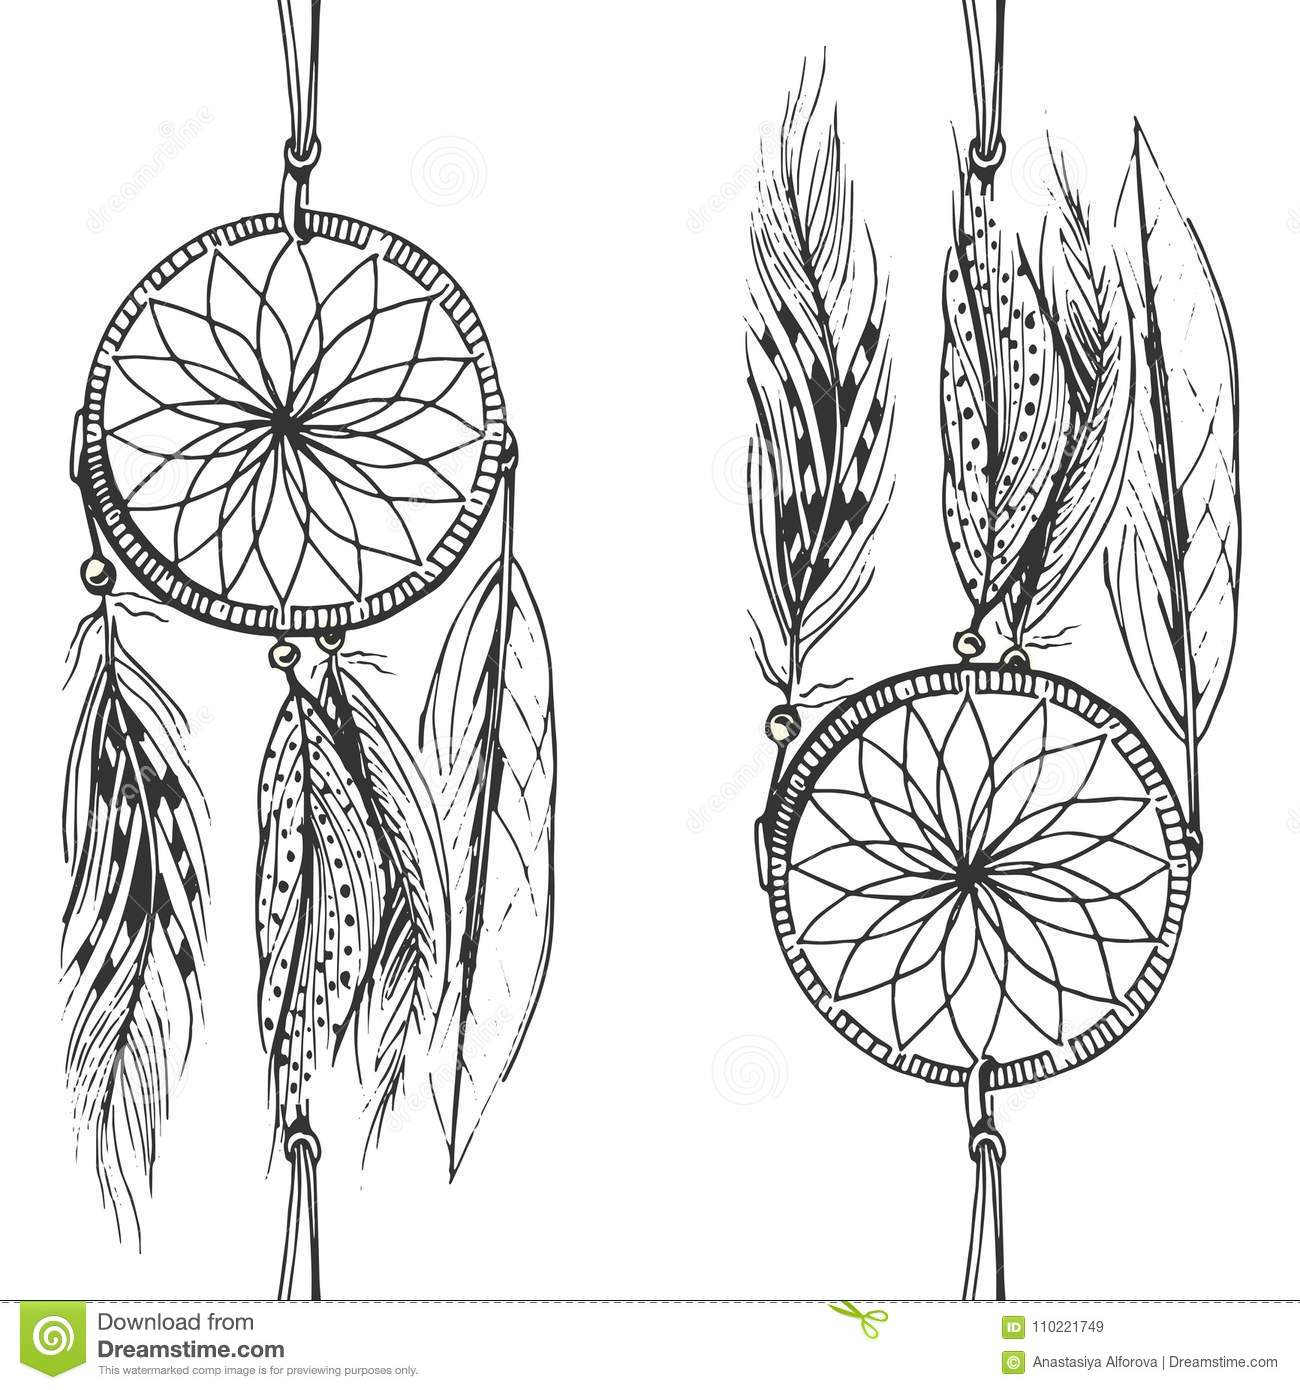 Dreamcatcher pattern stock vector. Illustration of feather